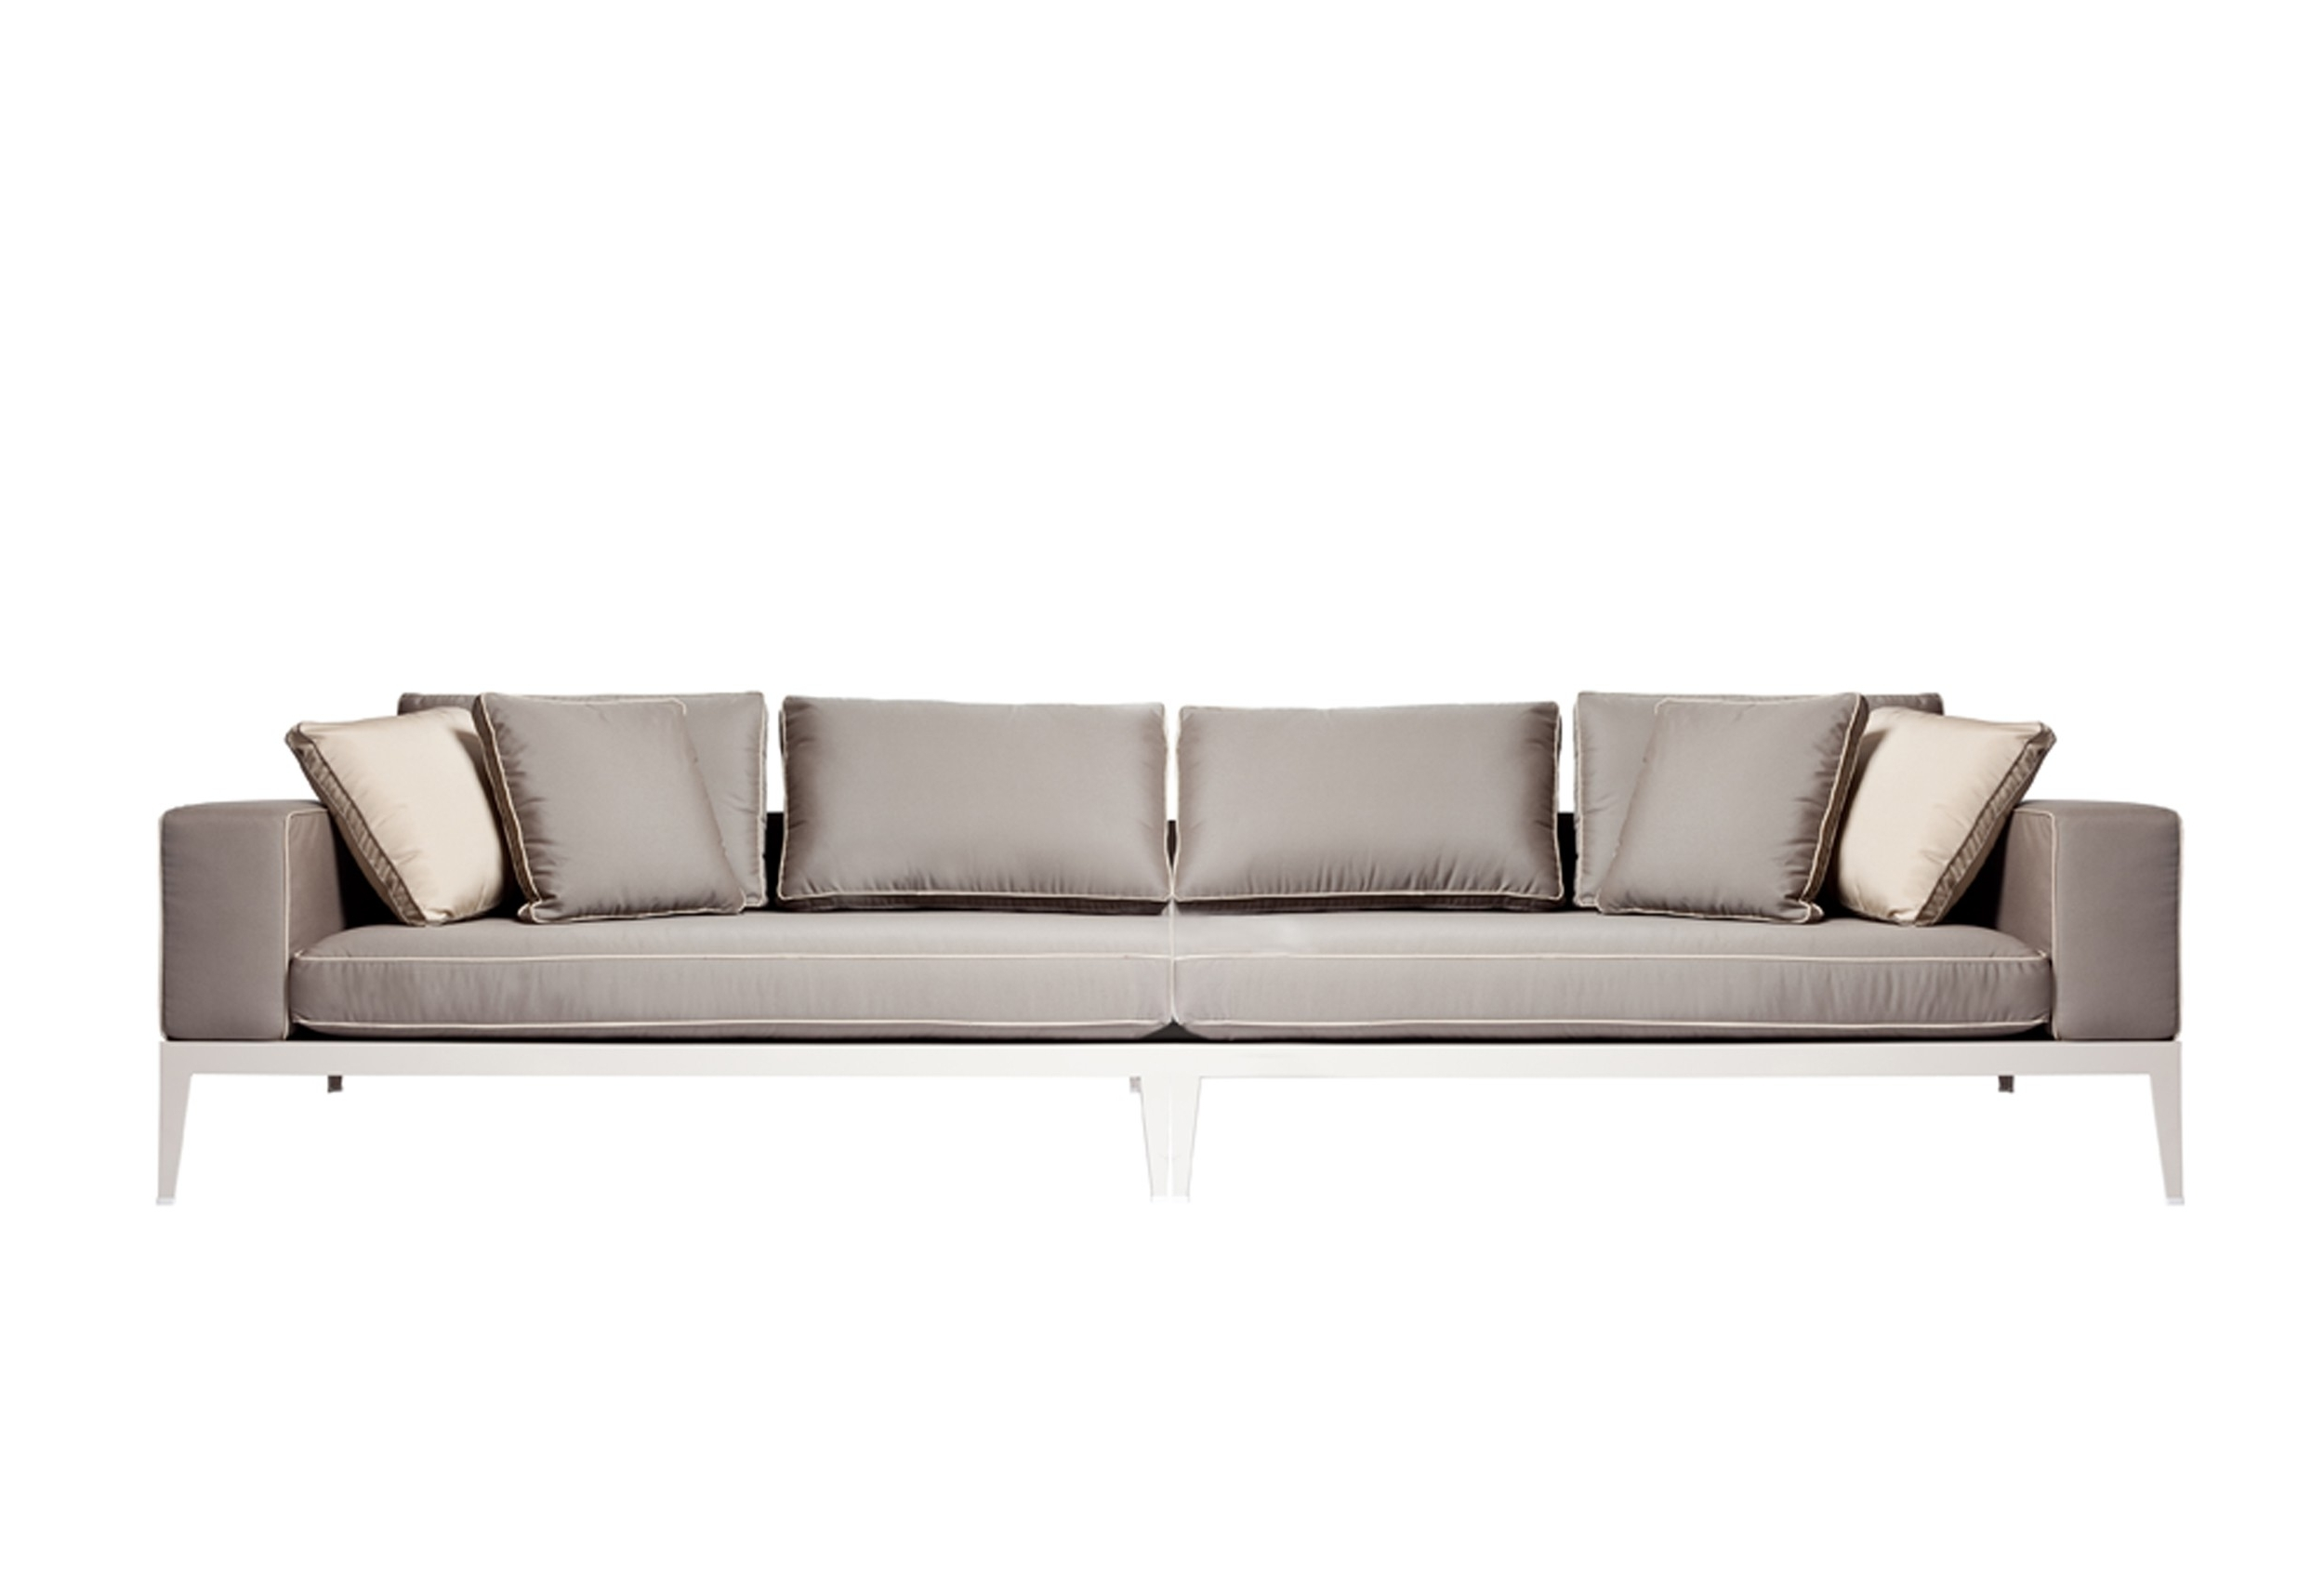 Balmoral 4 Seater Sofa (View 3 of 20)